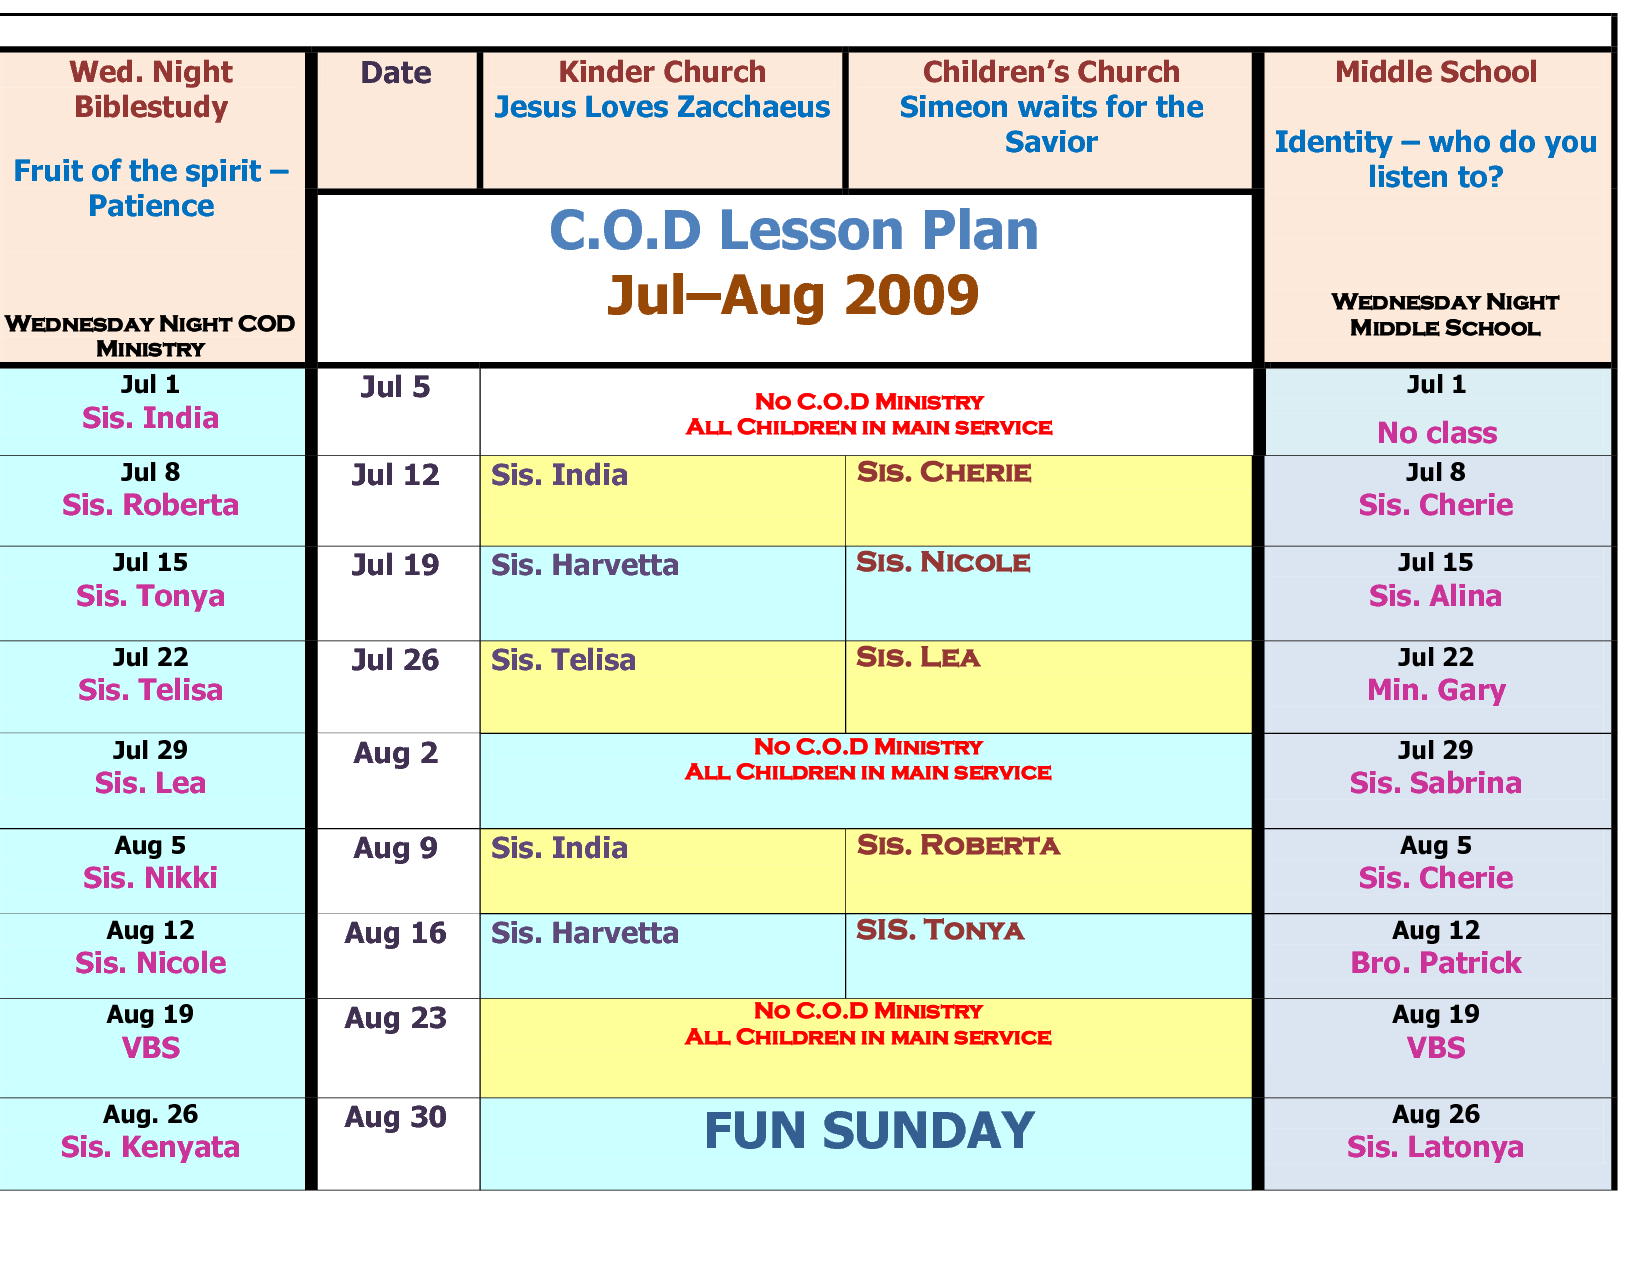 ChildrenS Church Schedule Template  Google Search  ChildrenS